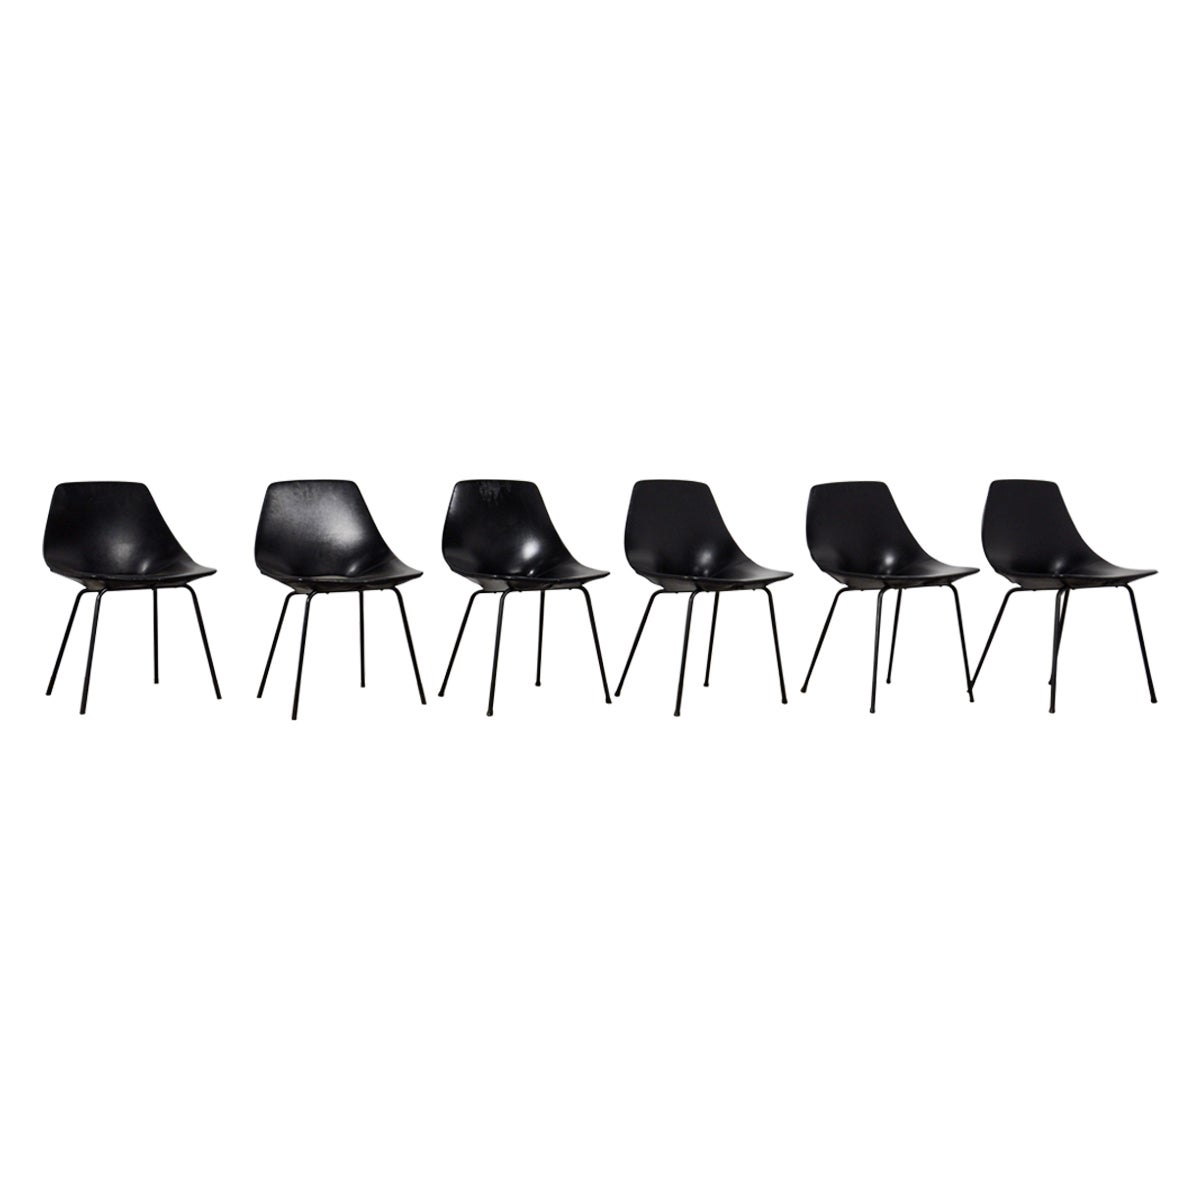 Tonneau Chairs by Pierre Guariche for Steiner, 1950s Set of 6